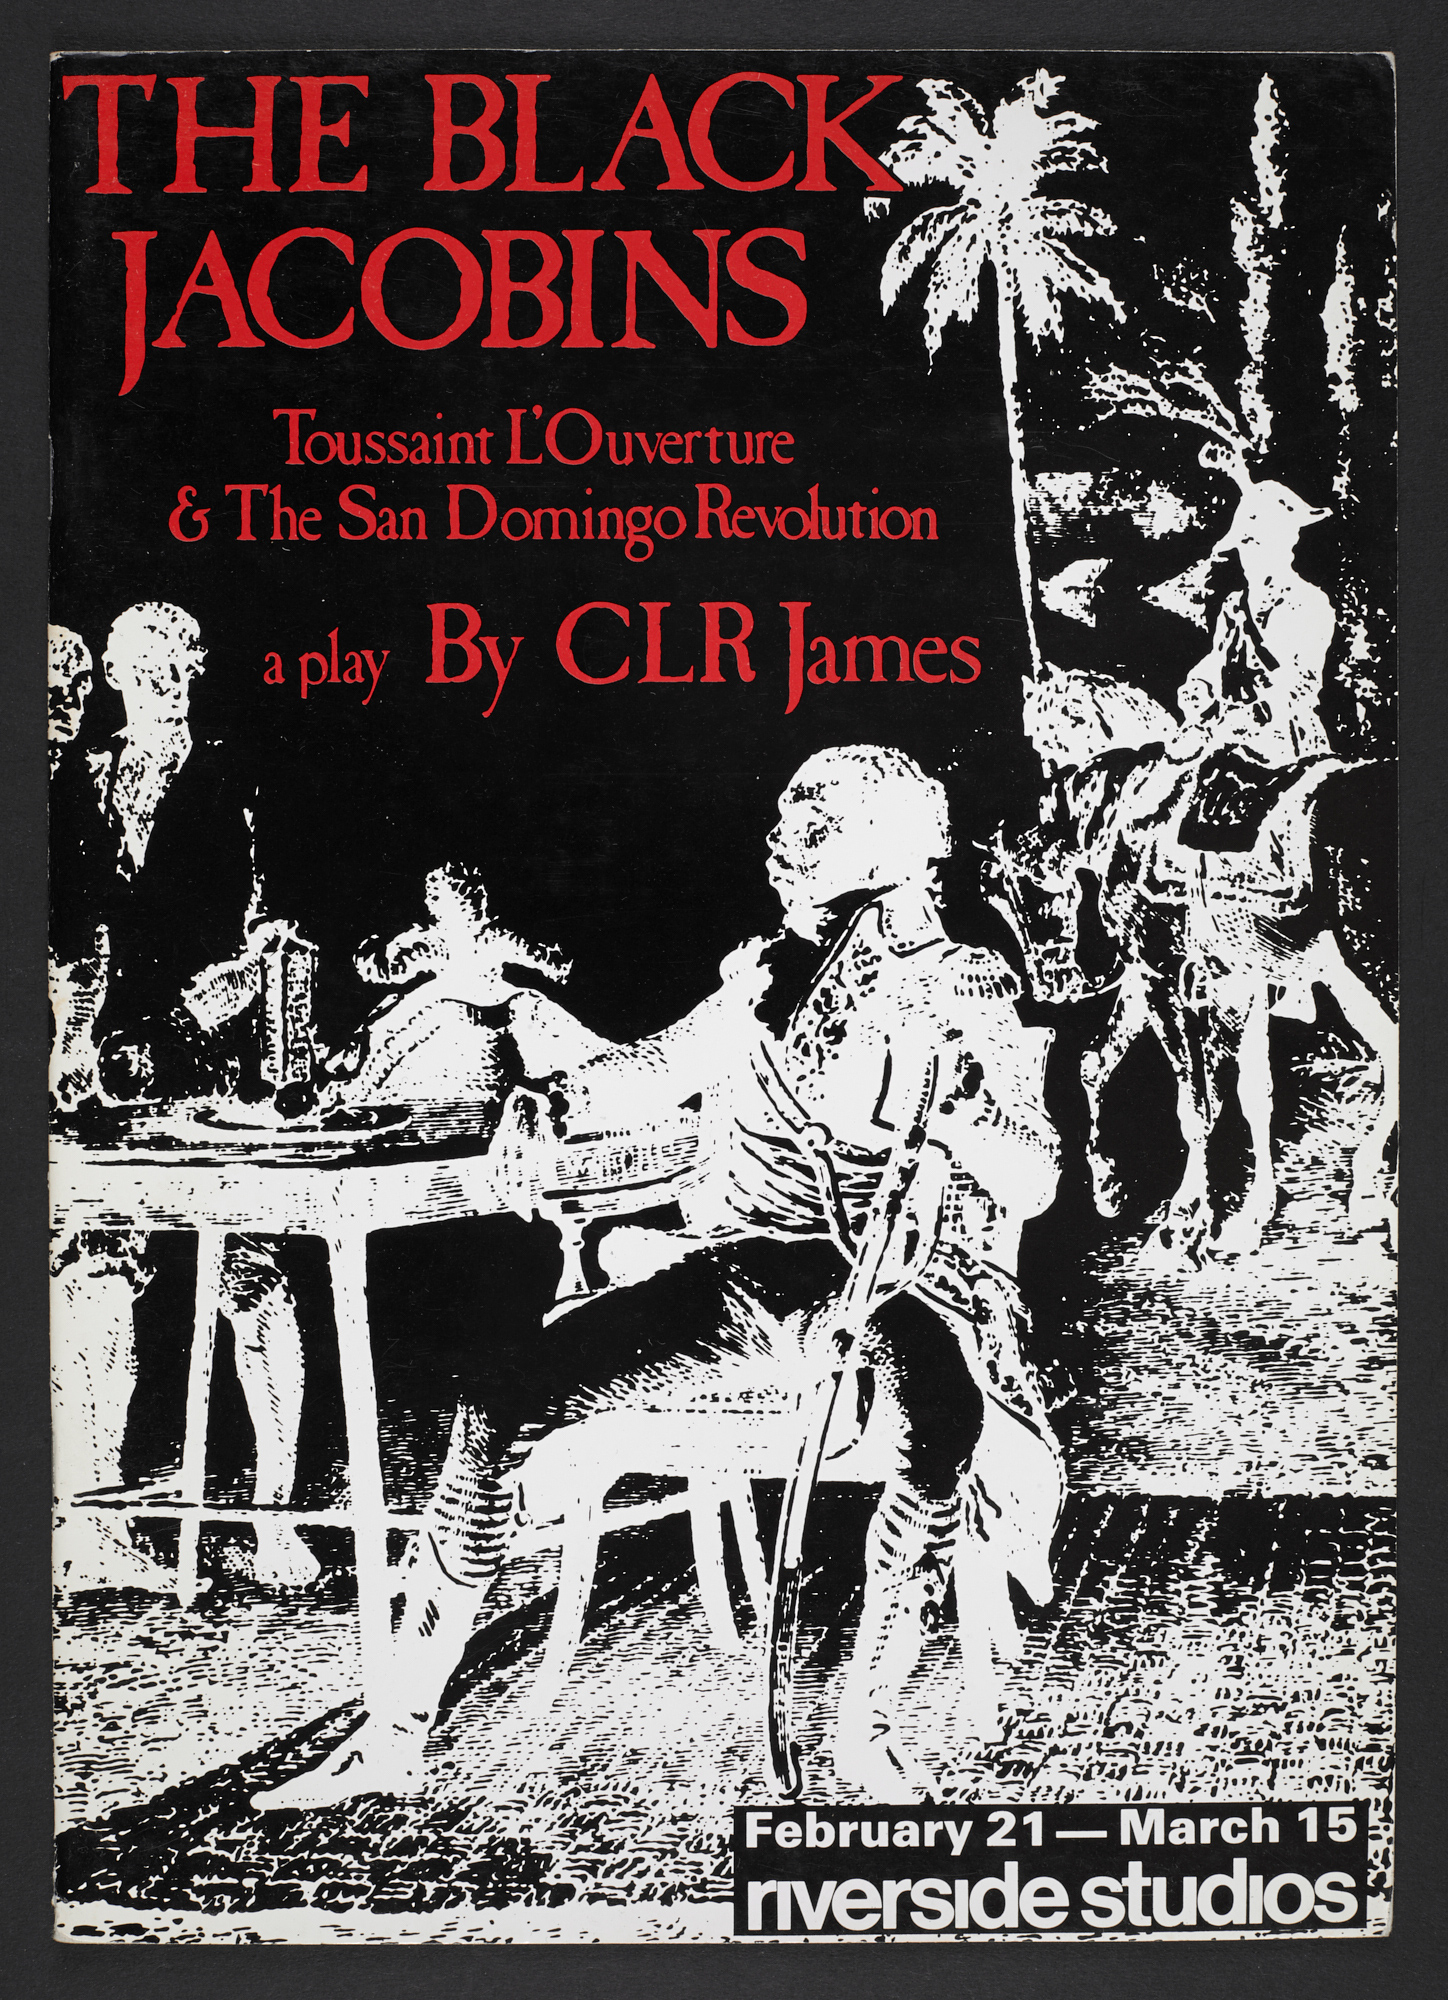 Cover image, showing a posterized print of Toussaint L'Ouverture, from the programme for The Black Jacobins, a play by C L R James, February 21 to March 15 1986, Riverside Studios